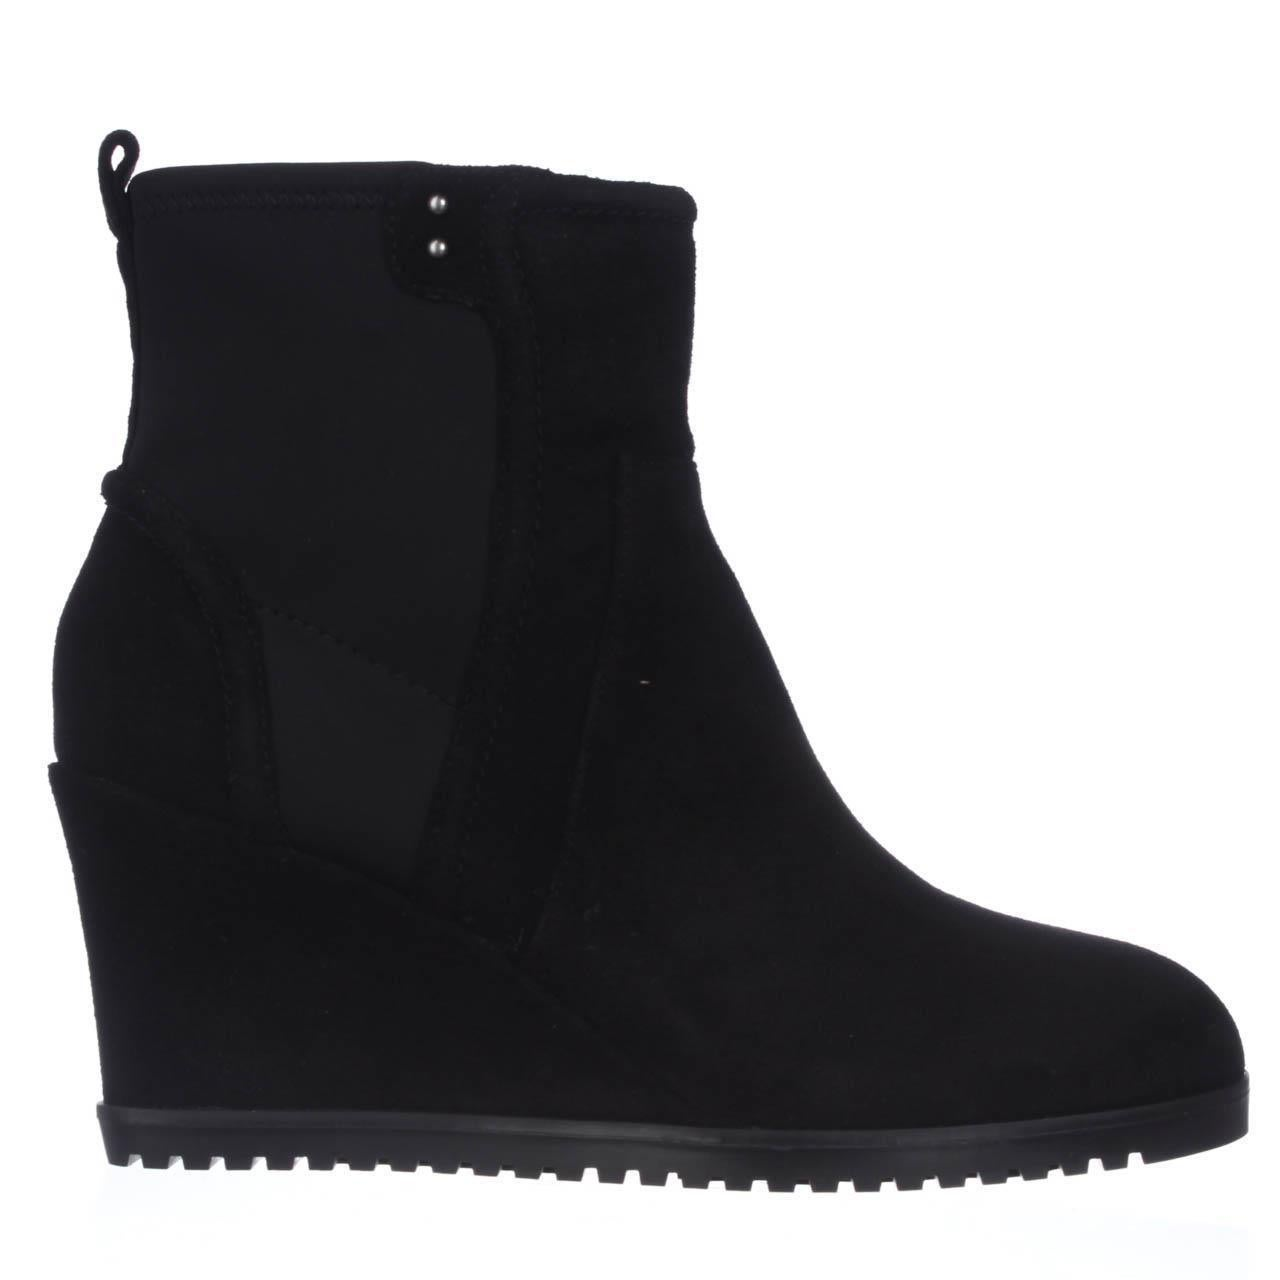 34f27b0f9c18 Shop Taryn Rose Beula Wedge Ankle Boots - Black Suede - Free Shipping Today  - Overstock - 14140038